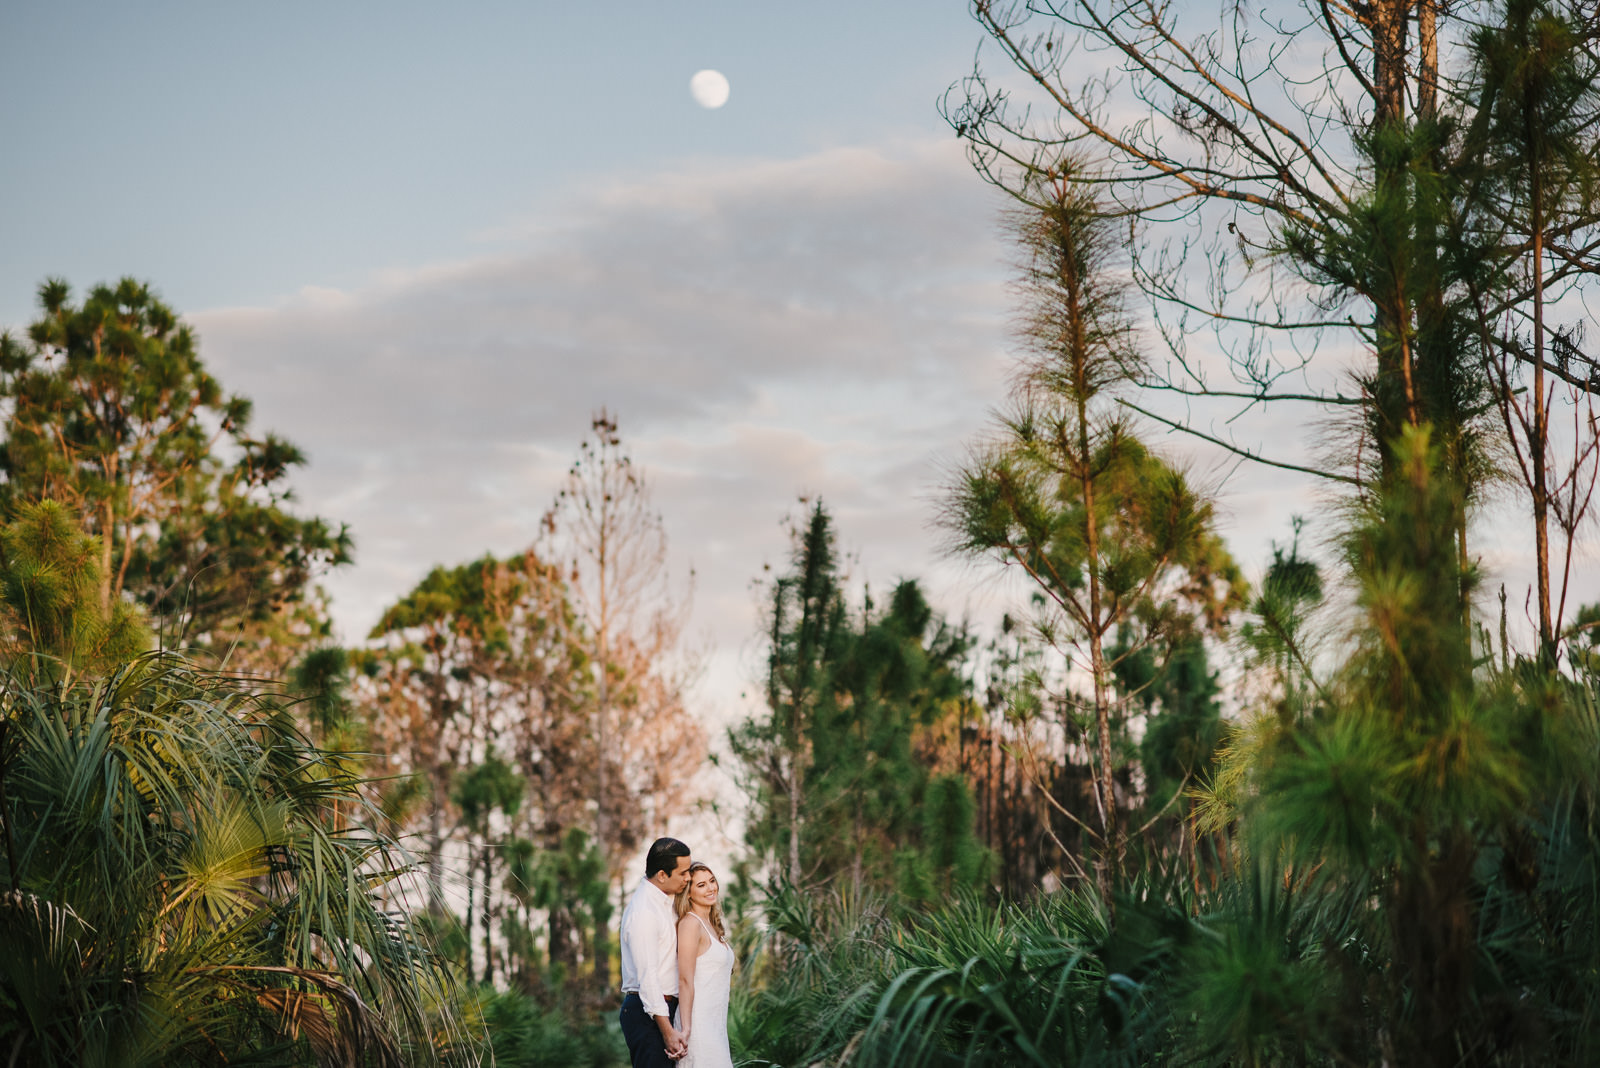 Evening Walk In The Woods And Beach Engagement Photography